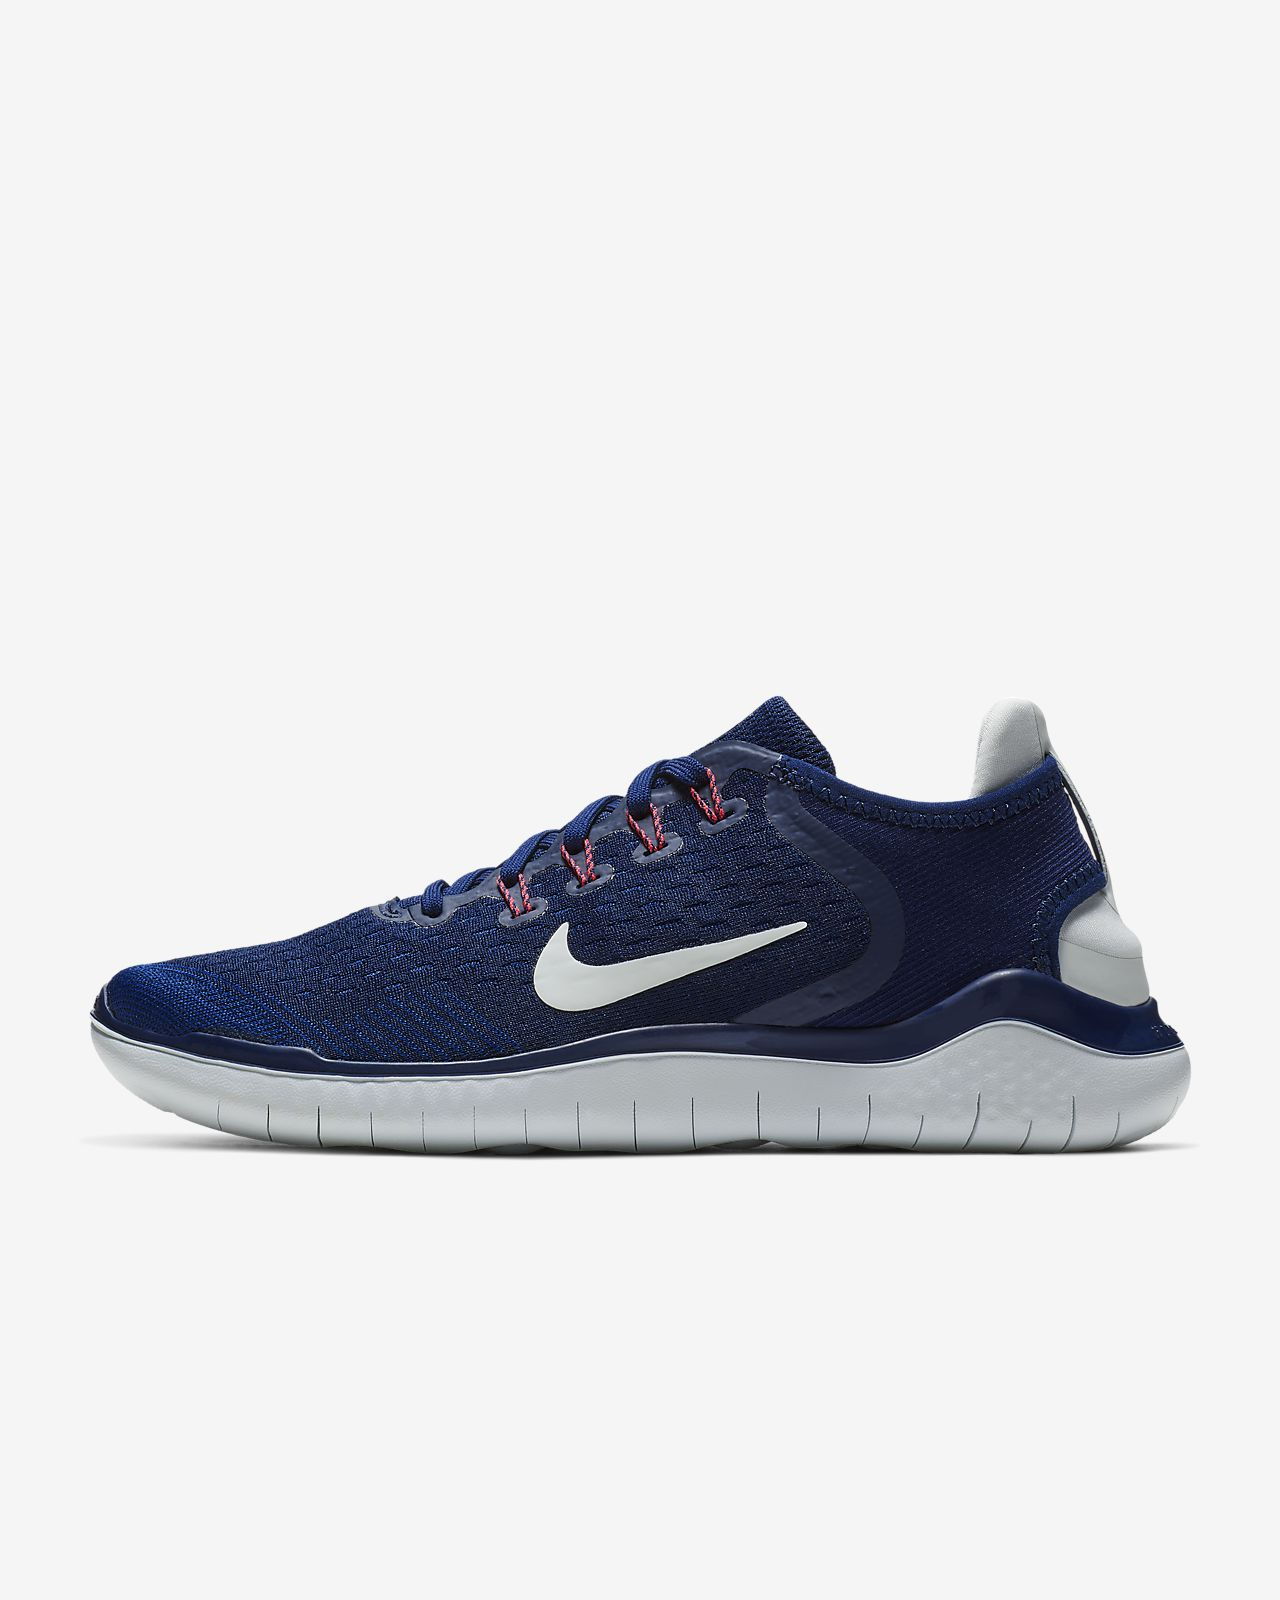 6539dec7611 Nike Free RN 2018 Women s Running Shoe. Nike.com